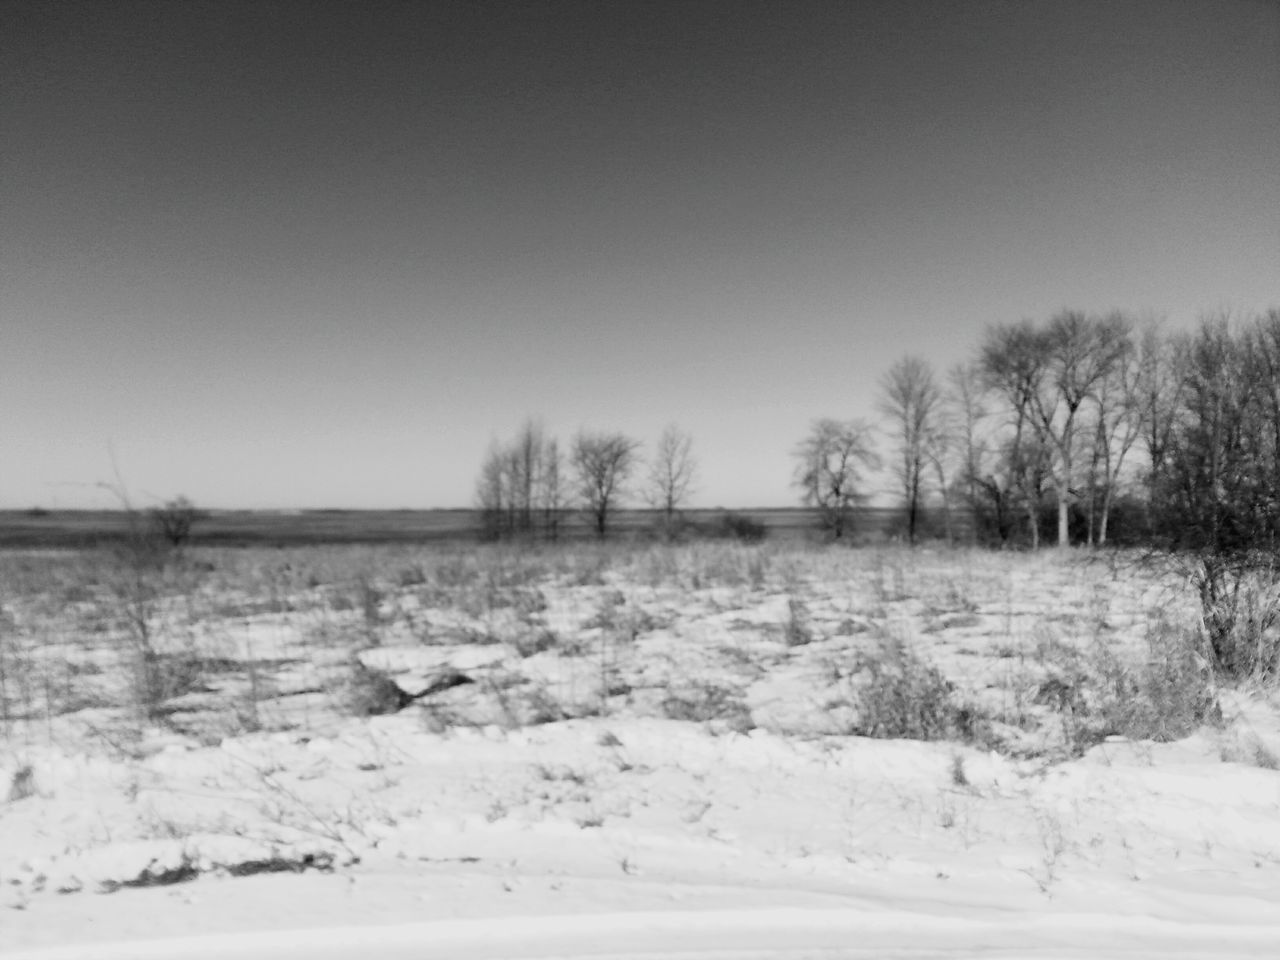 cold temperature, winter, snow, nature, landscape, tranquility, tranquil scene, clear sky, field, scenics, outdoors, tree, beauty in nature, no people, cold, frozen, bare tree, day, sky